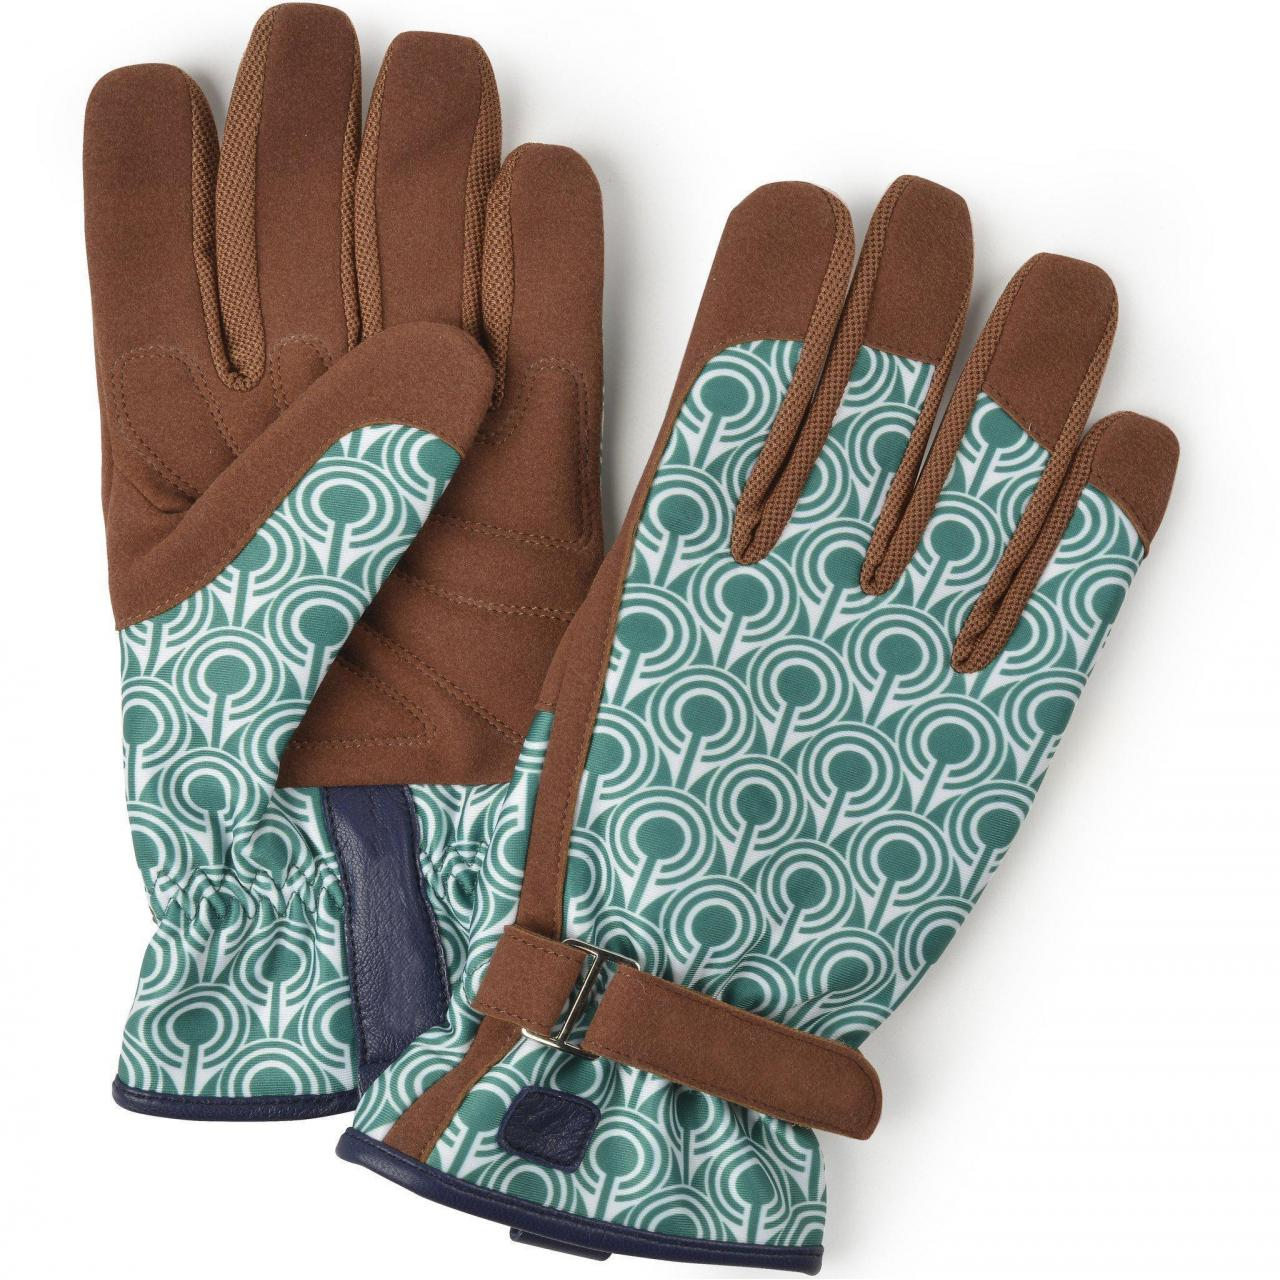 Quality Gardening Gloves Product Code: HF-2657 for sale